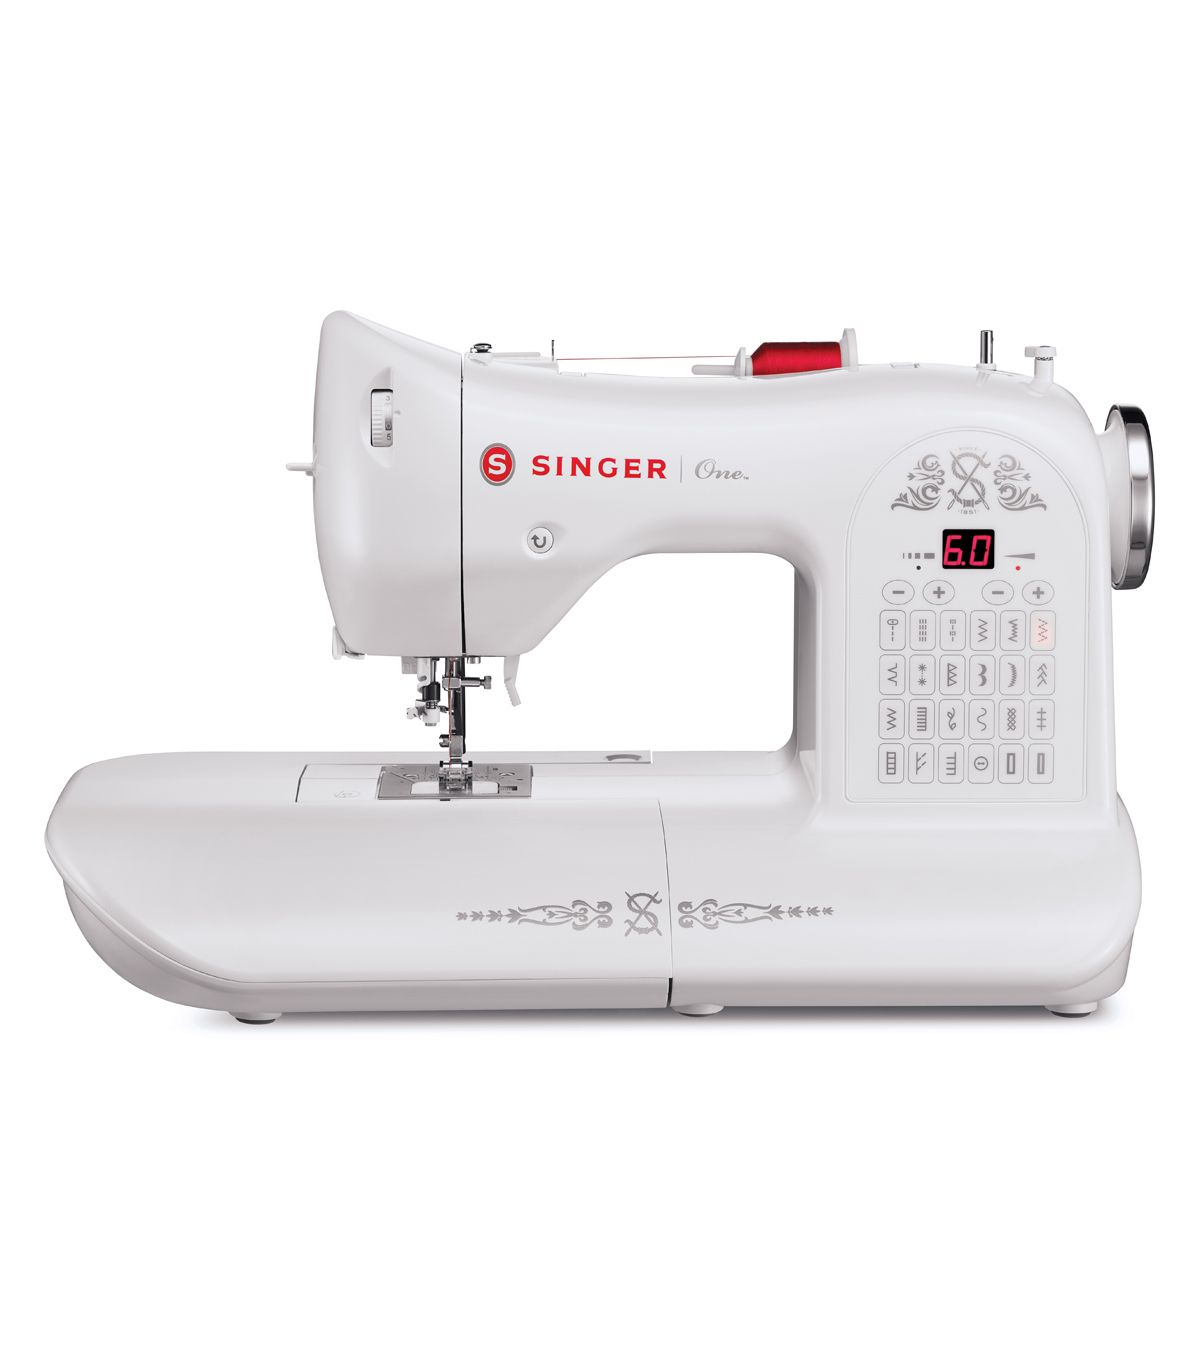 Singer ONE Computerized Sewing Machine | Sewing machine ...